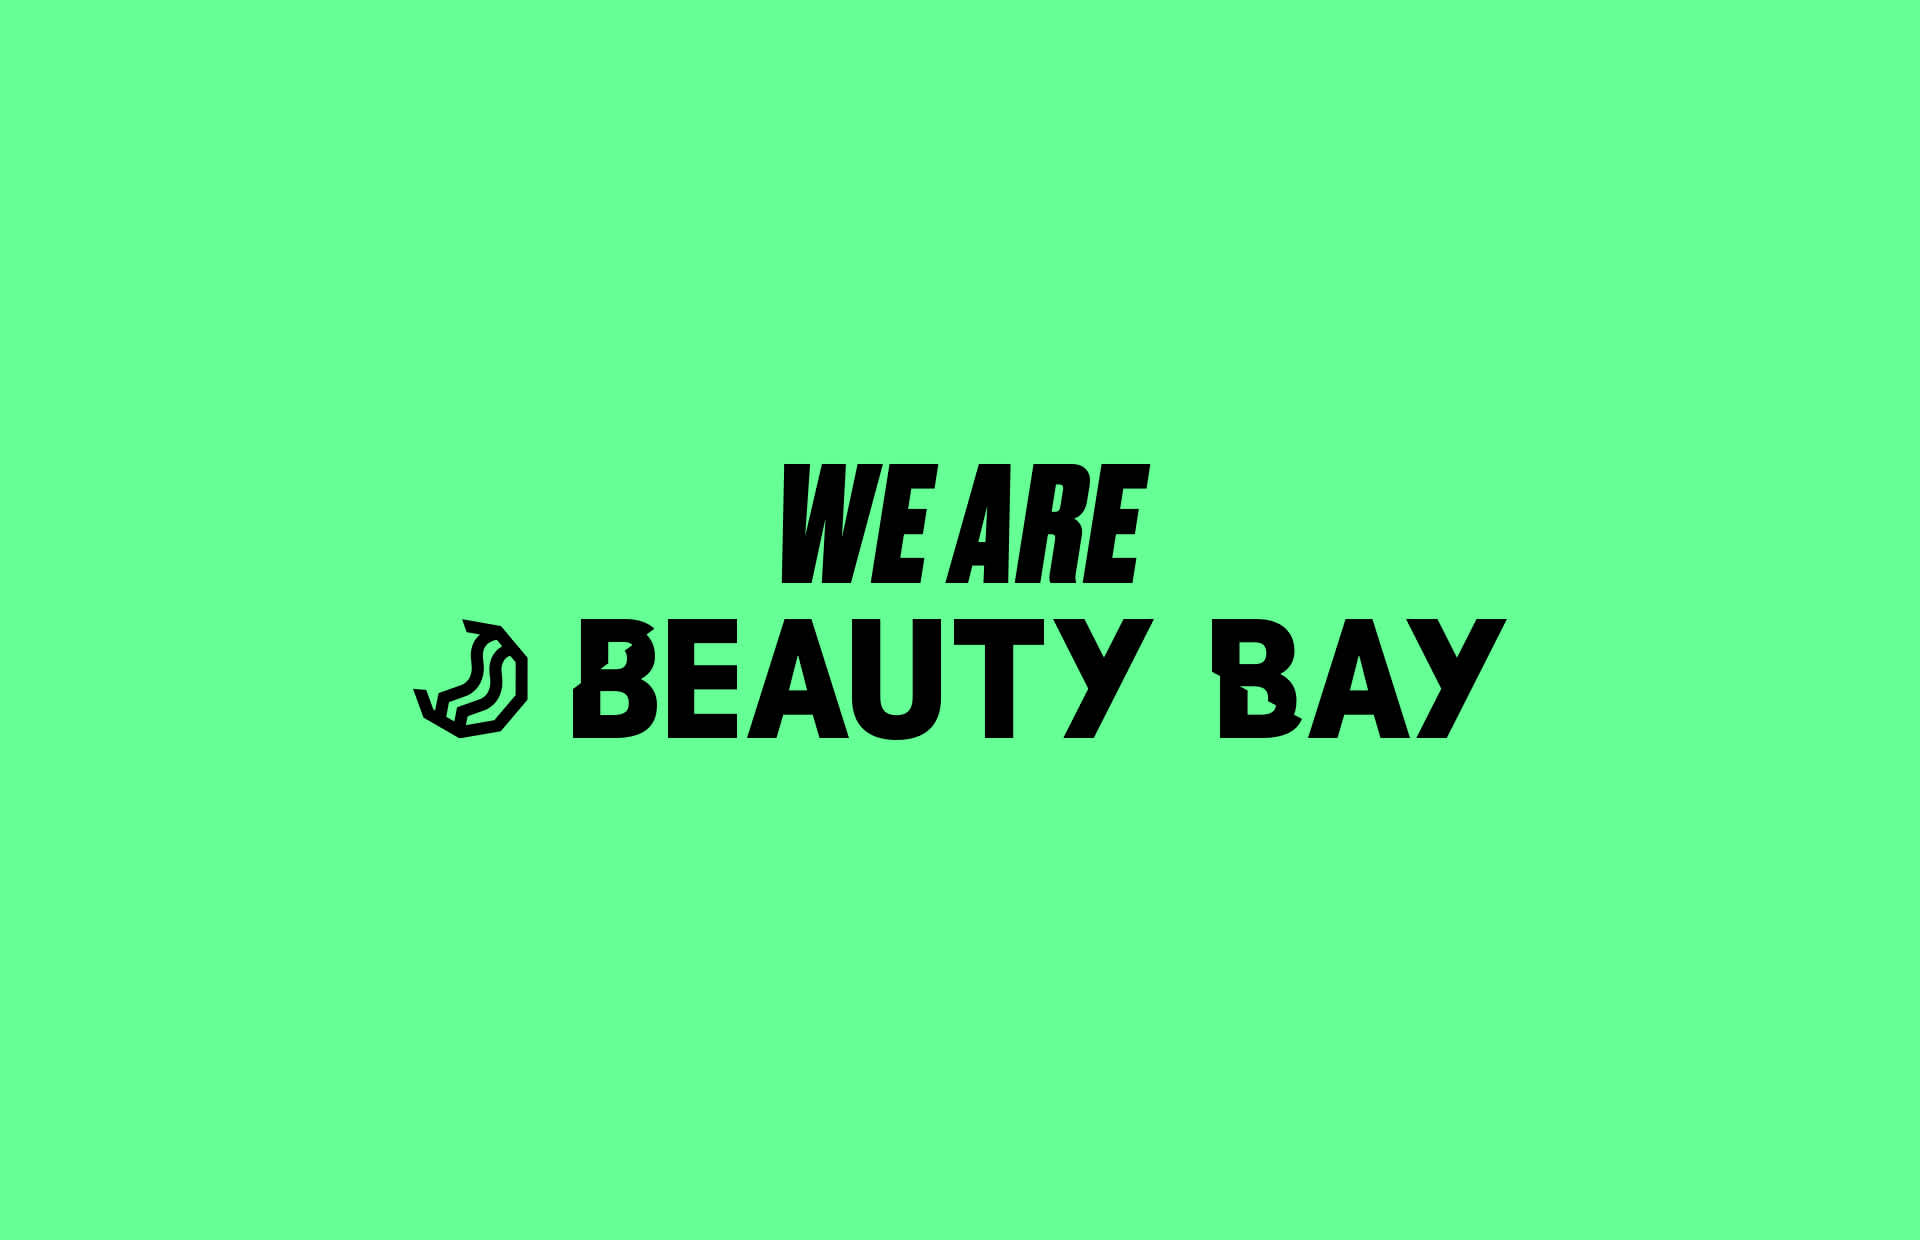 Makeup | Hair Care | Skin Care | Nails | Beauty Bay